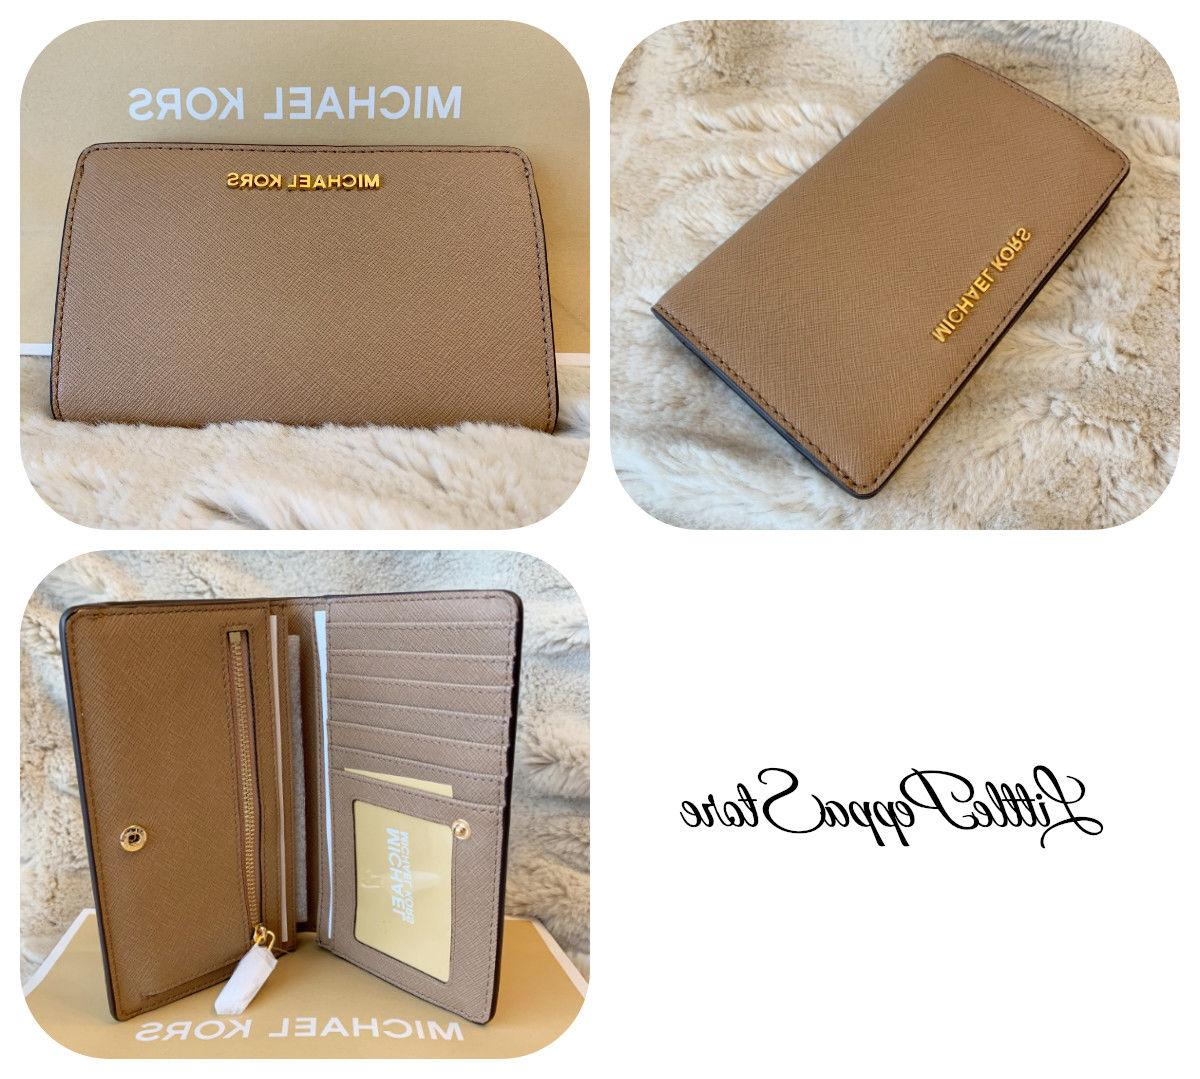 NWT KORS OR LEATHER TRAVEL BIFOLD IN VARIOUS